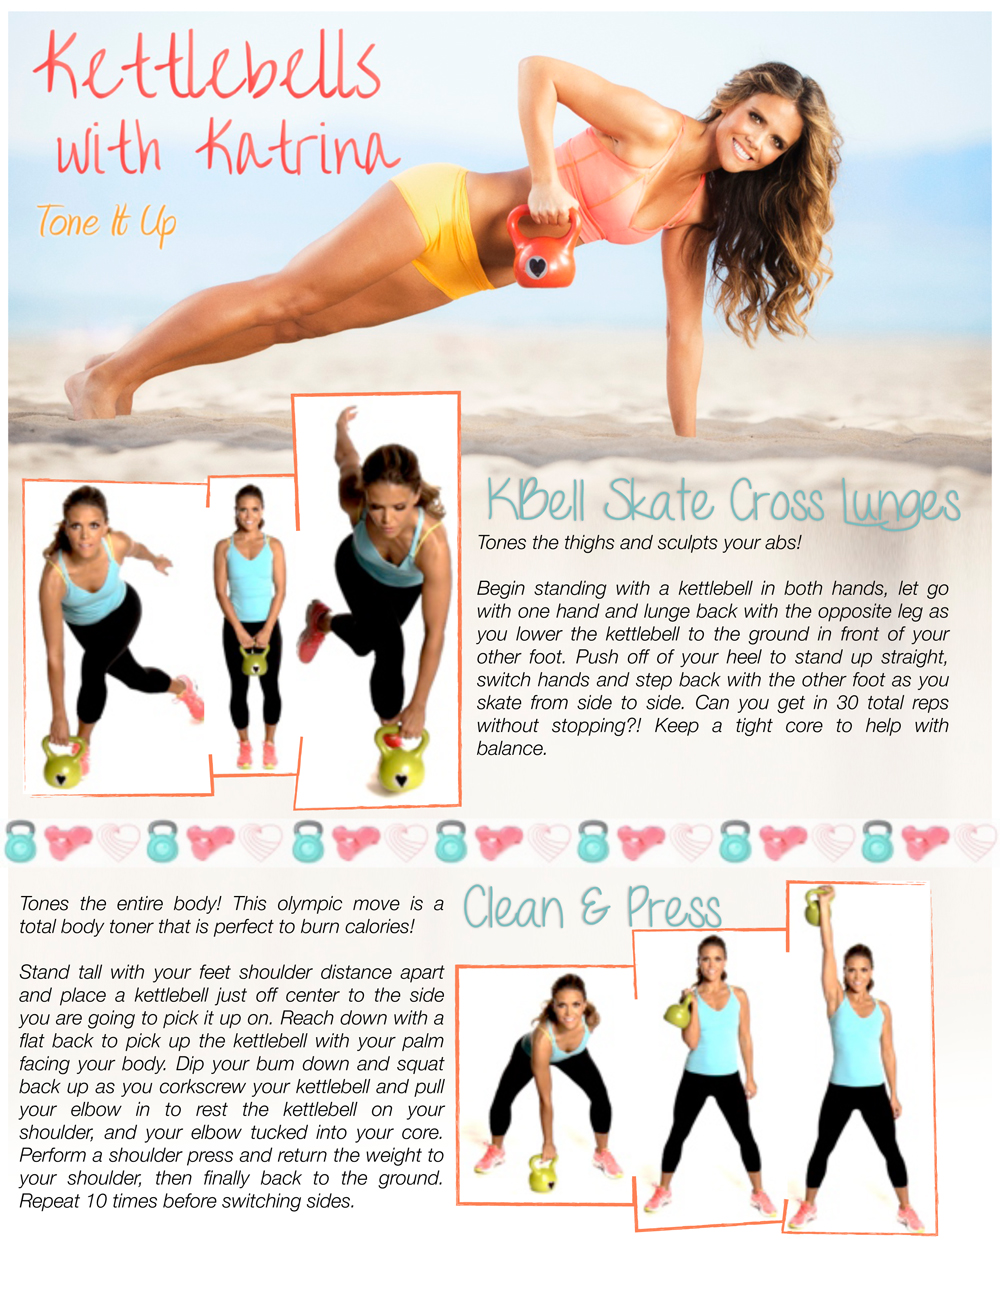 free printable kettlebell workouts skate cross lunges clean and press